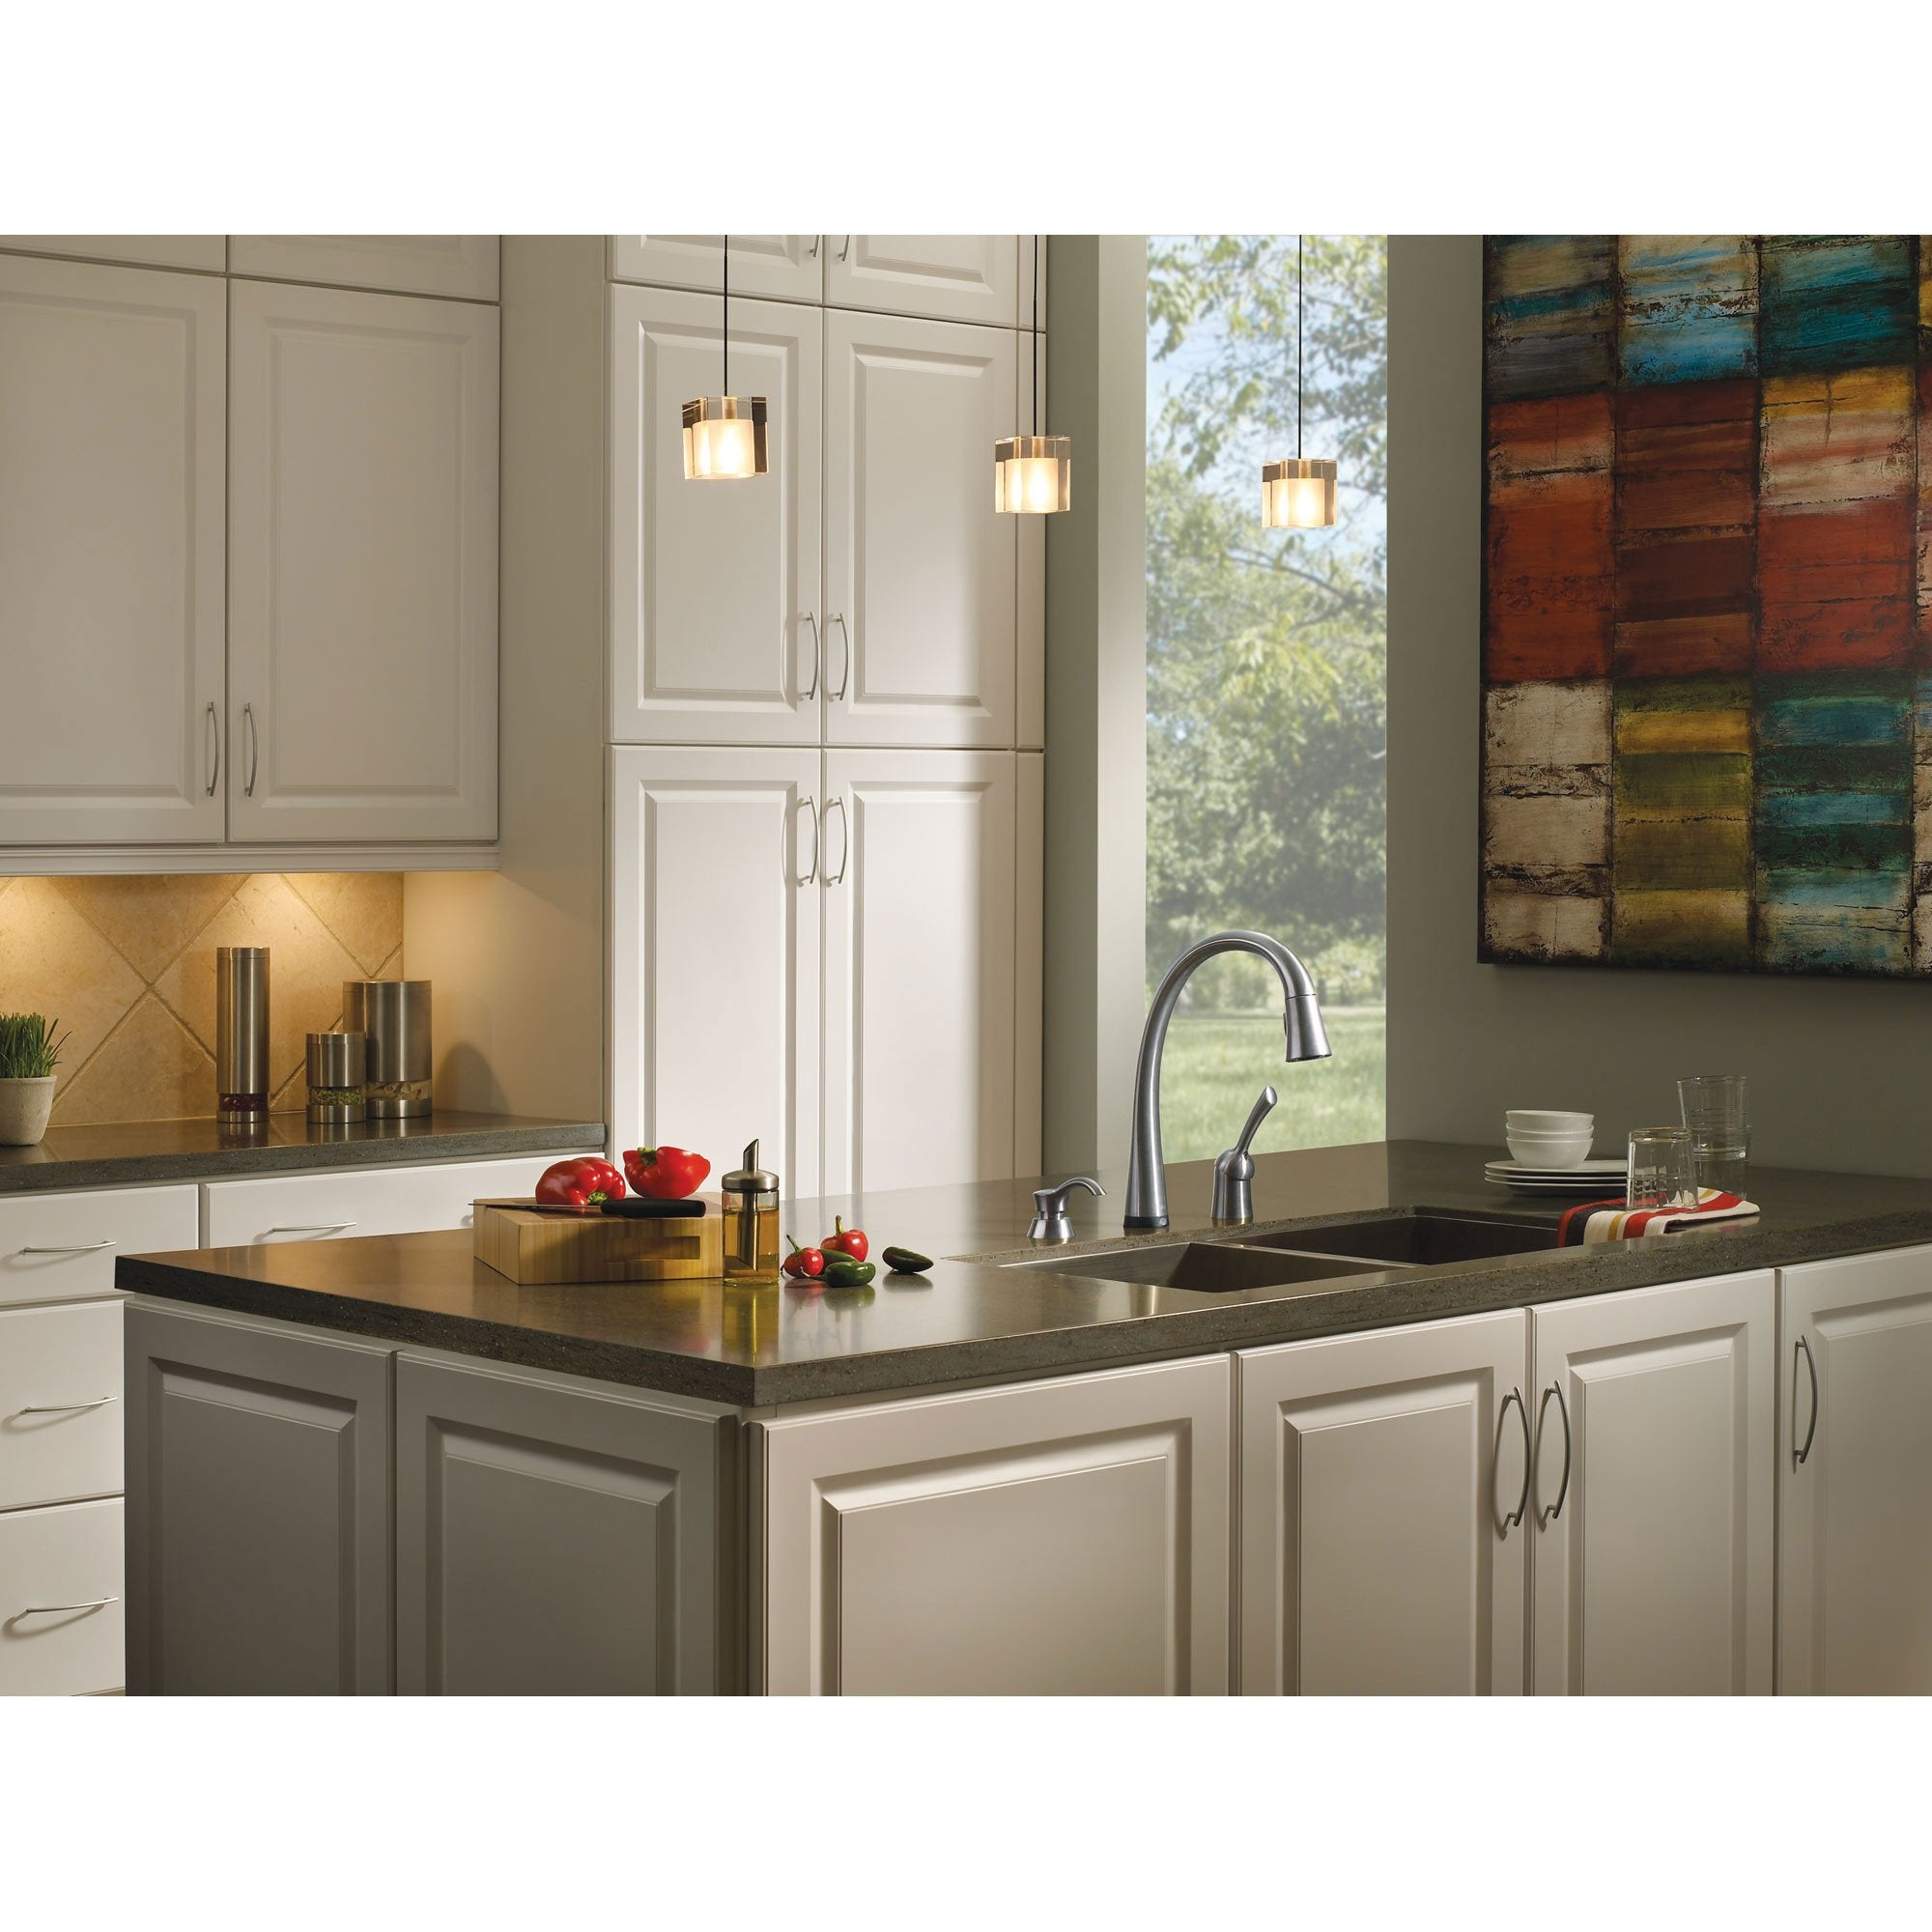 Delta Pilar Kitchen Faucet Delta Arctic Stainless Finish Pilar Collection Single Handle Pull